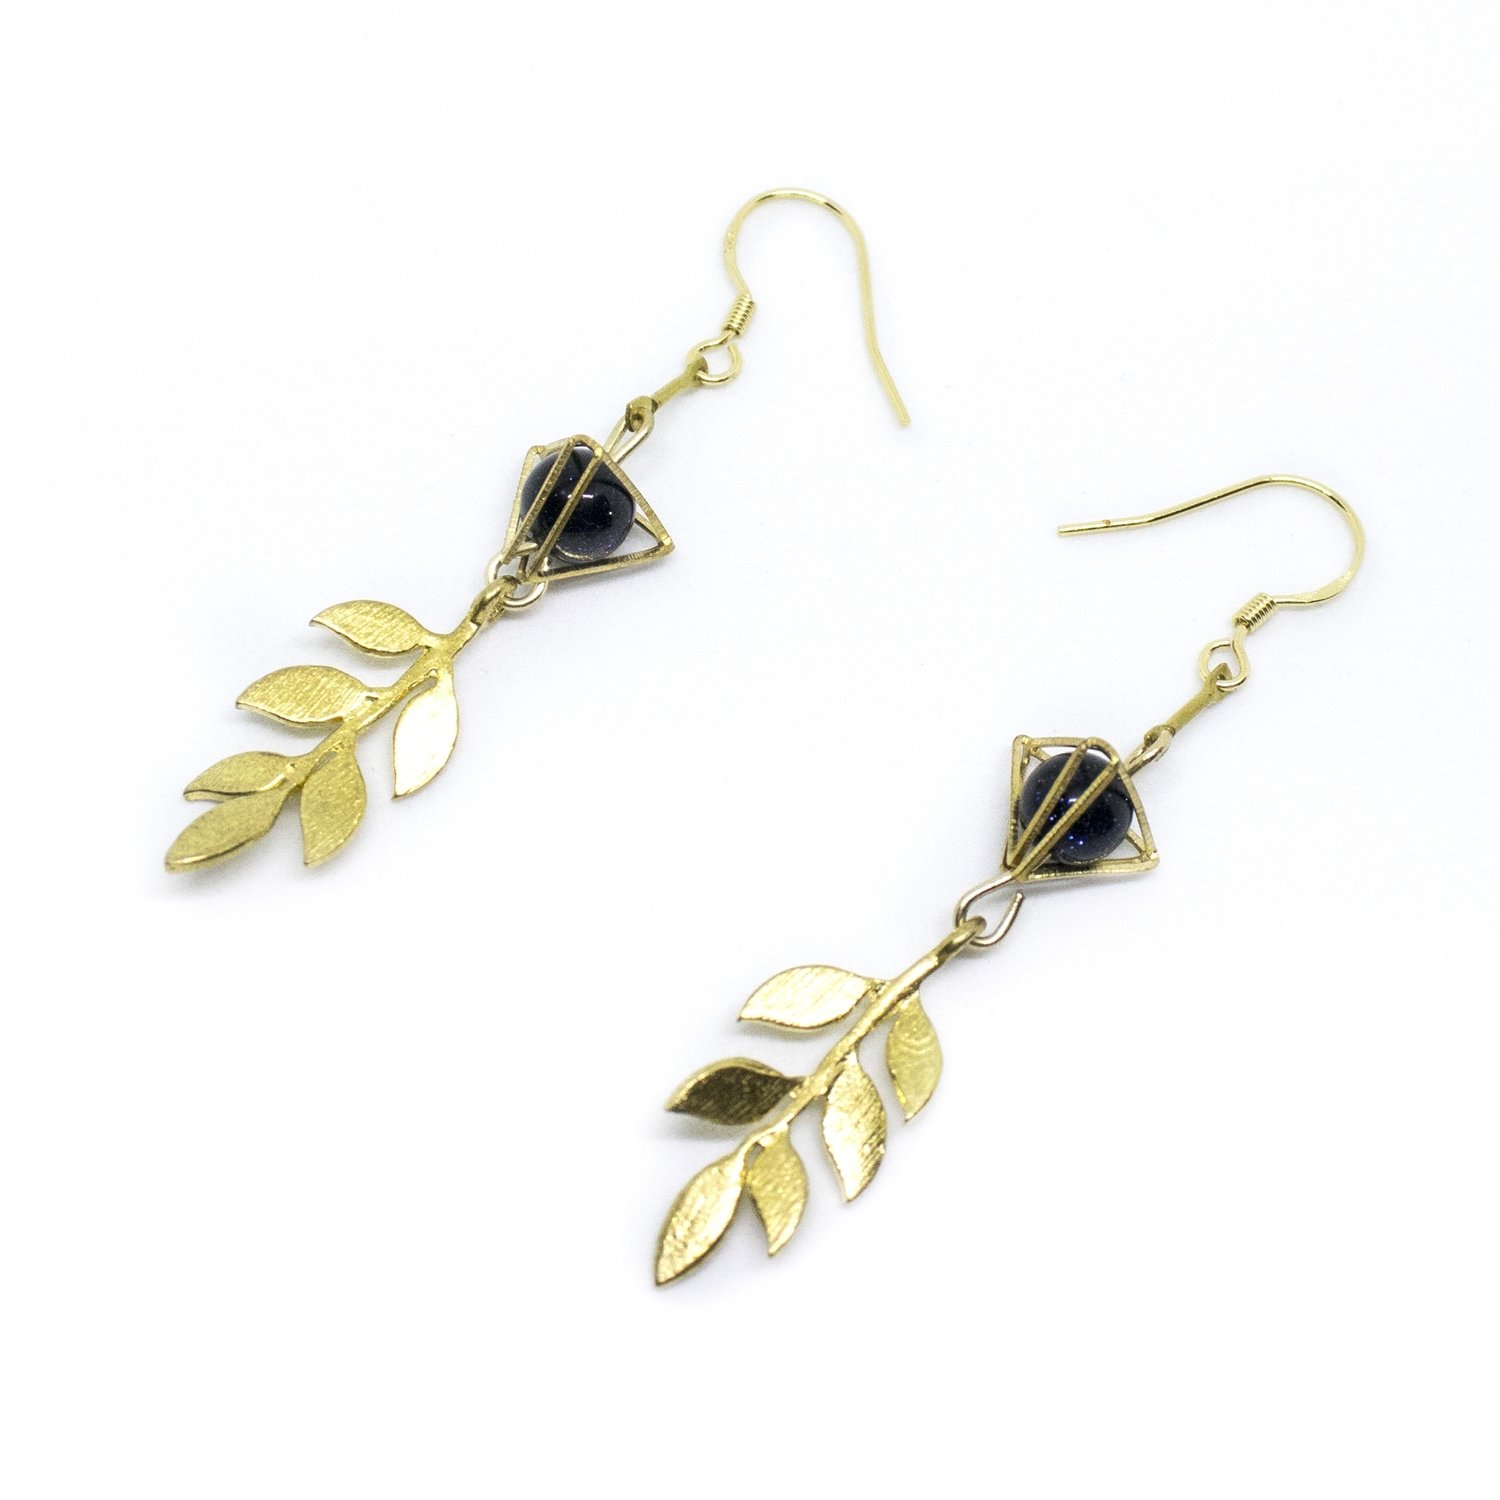 Golden sprout - On sale, 925 golden hook, long earrings, Hong Kong design, fashion jewellery